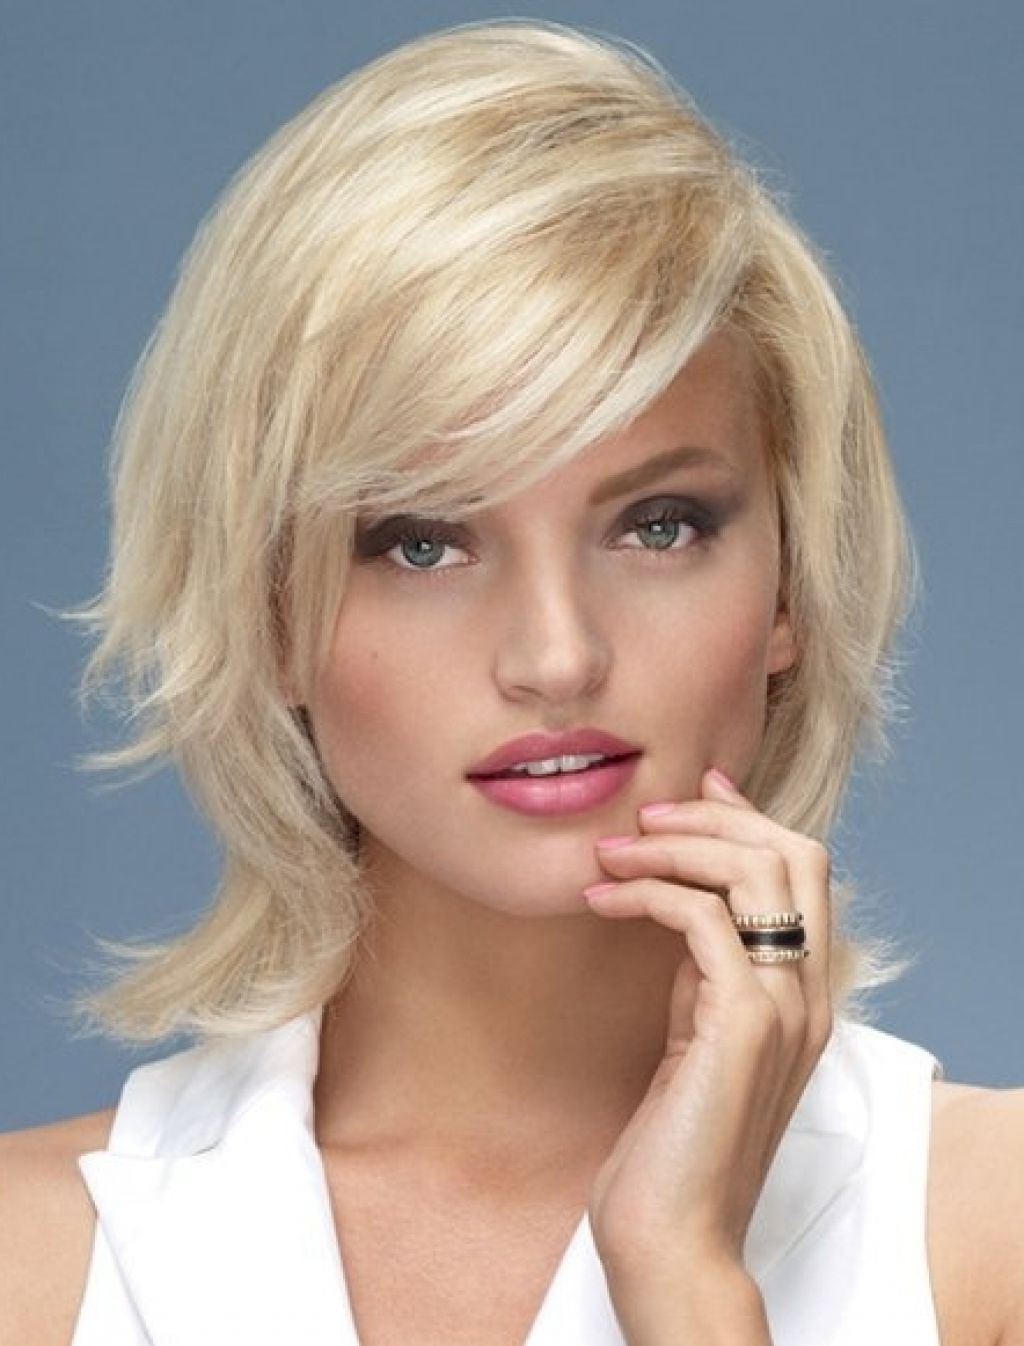 Medium Short Hairstyles For Round Faces – Hairstyle For Women & Man Within Medium Short Haircuts For Round Faces (View 19 of 25)